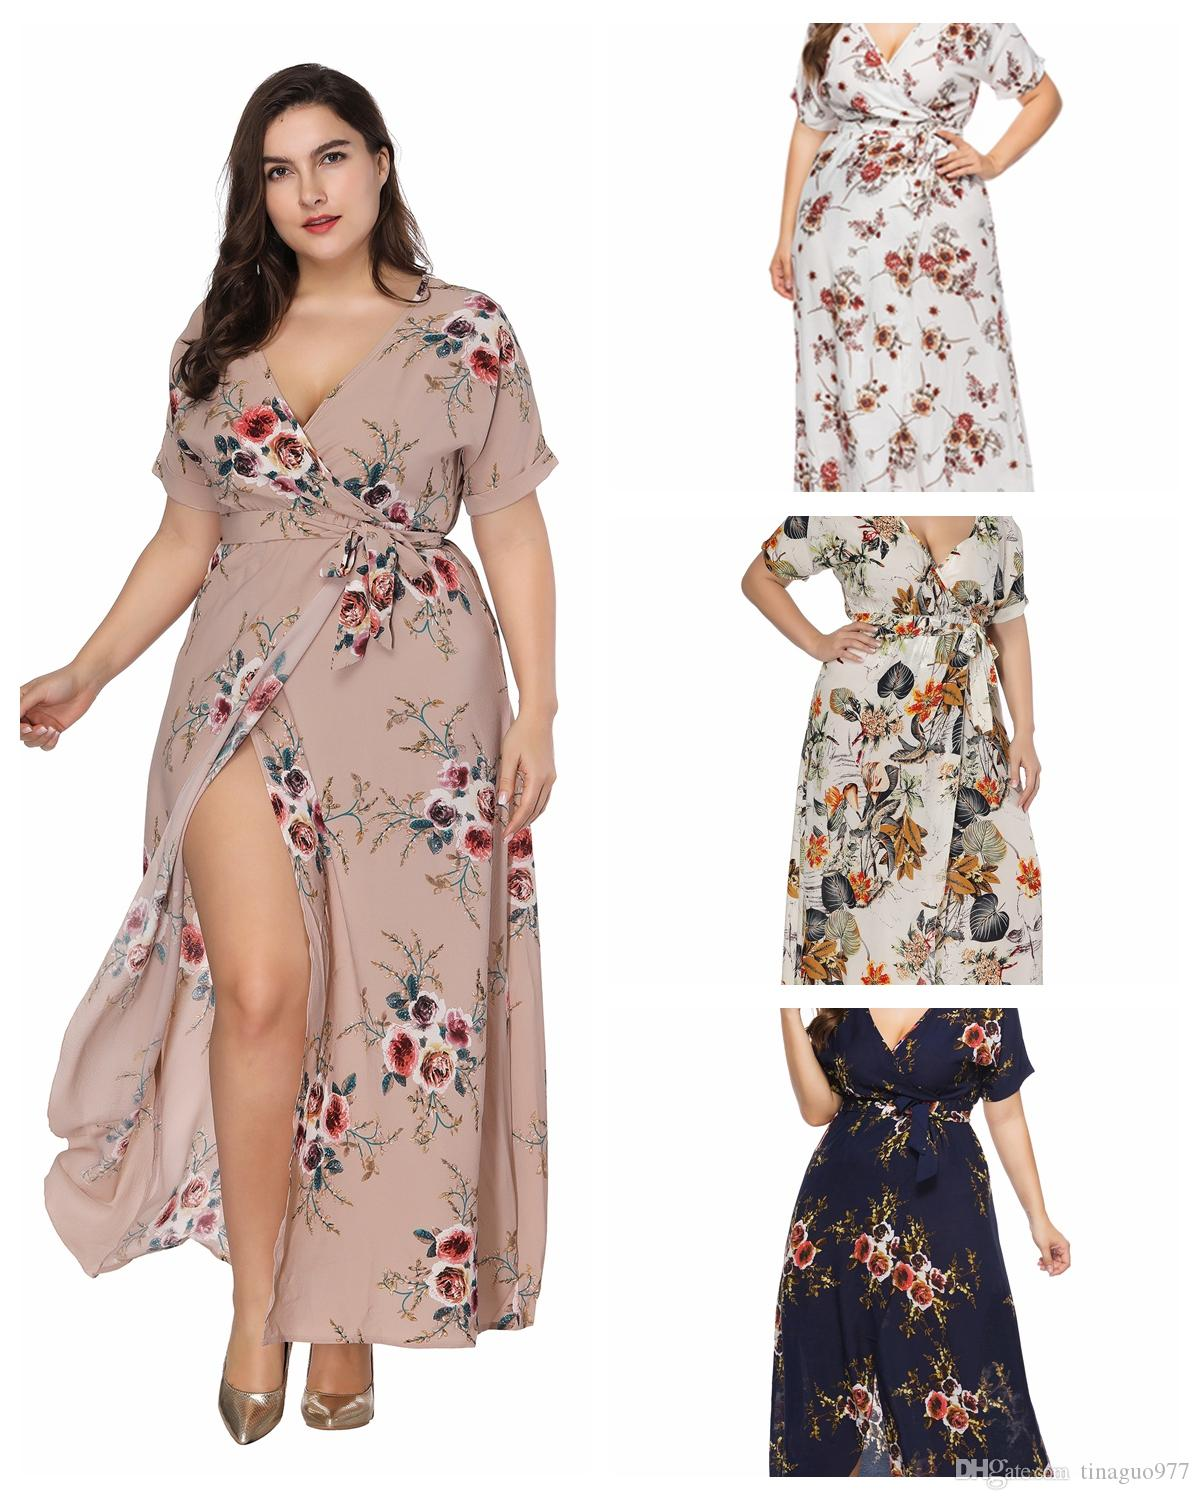 2019 Women S Clothing Plus Size Floral Print Maxi Dresses V Neck Short  Sleeve Big Size Bohemian Dress From Tinaguo977, $17.42 | DHgate.Com